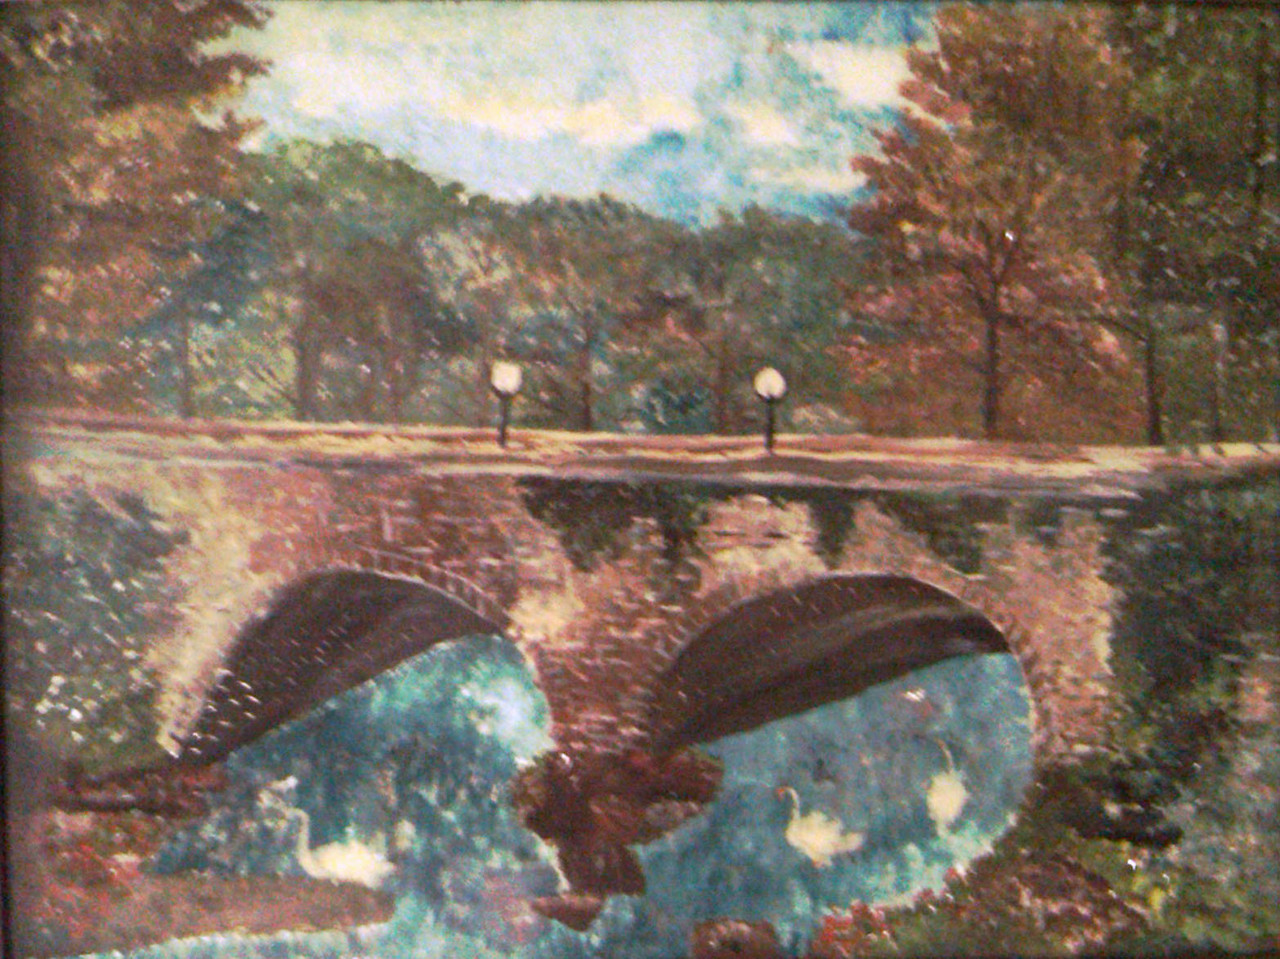 Bridge with Swans